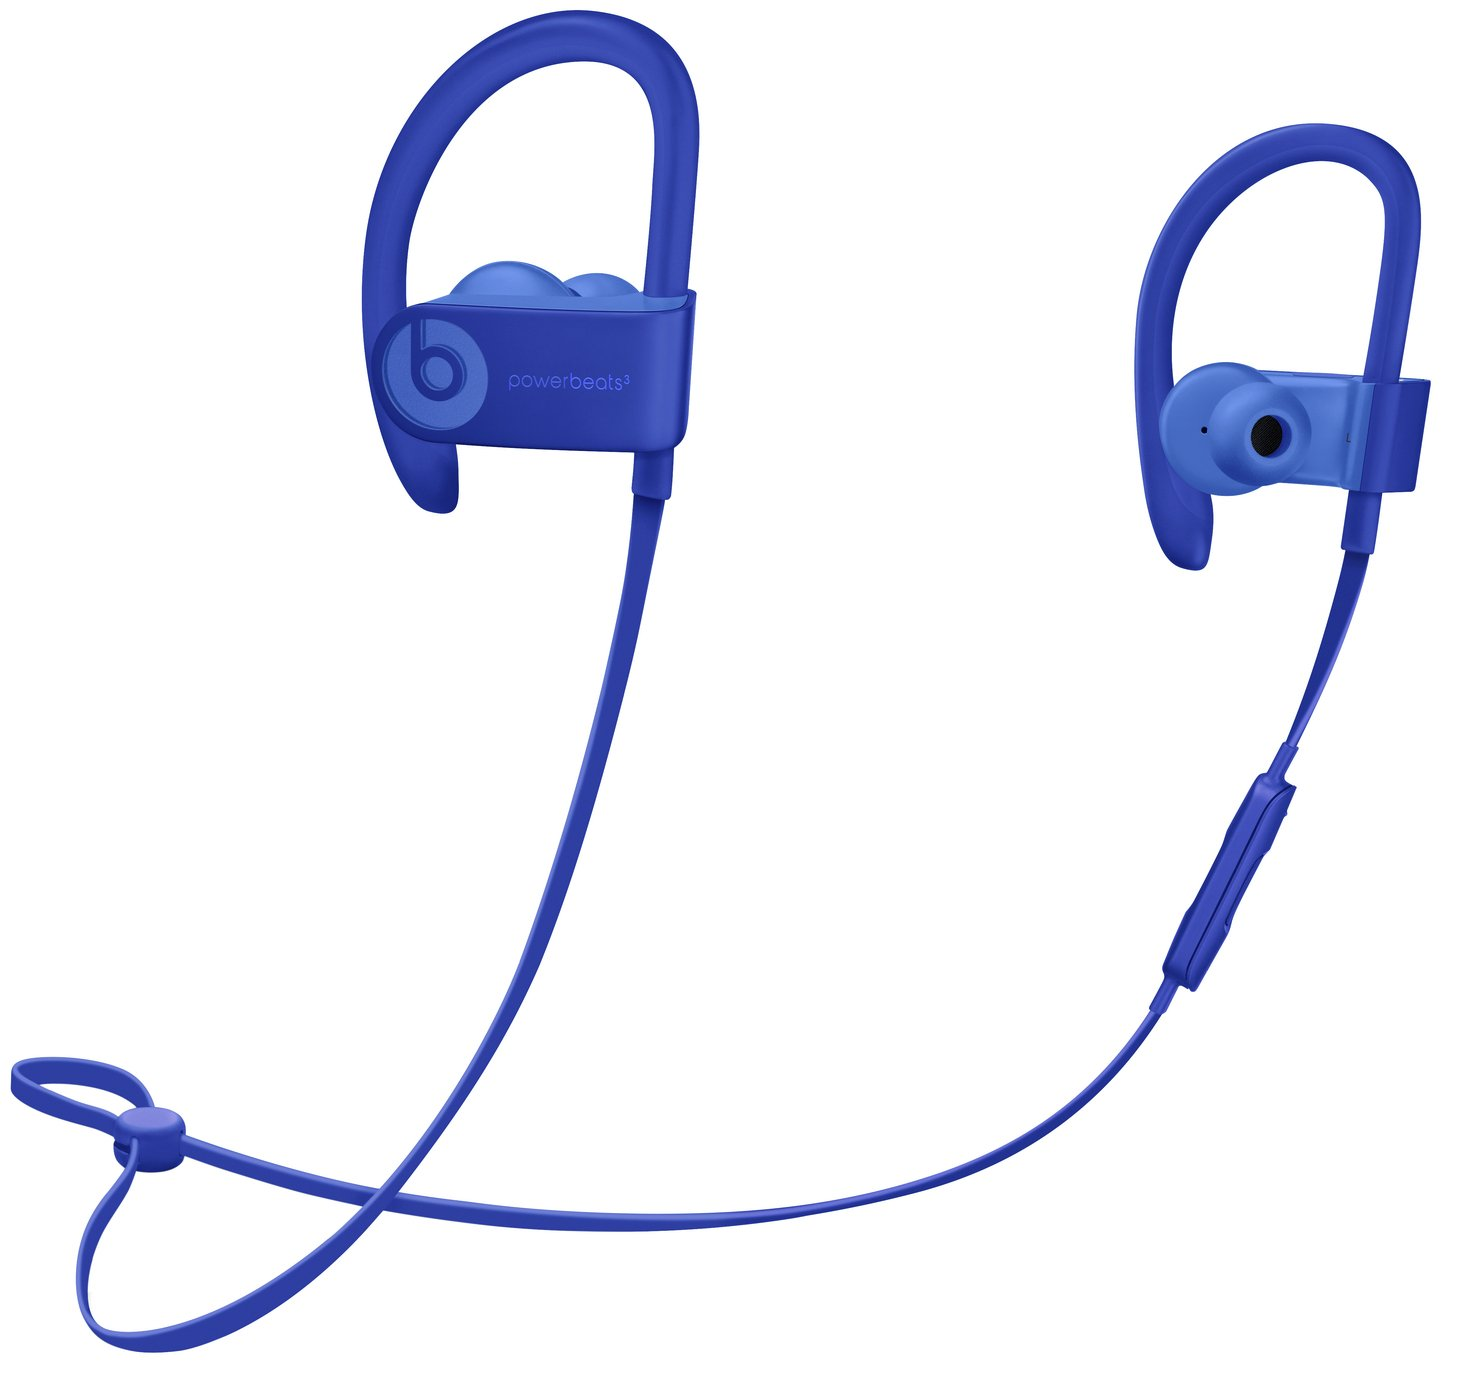 Beats by Dre Powerbeats 3 Wireless In- Ear Headphones - Blue